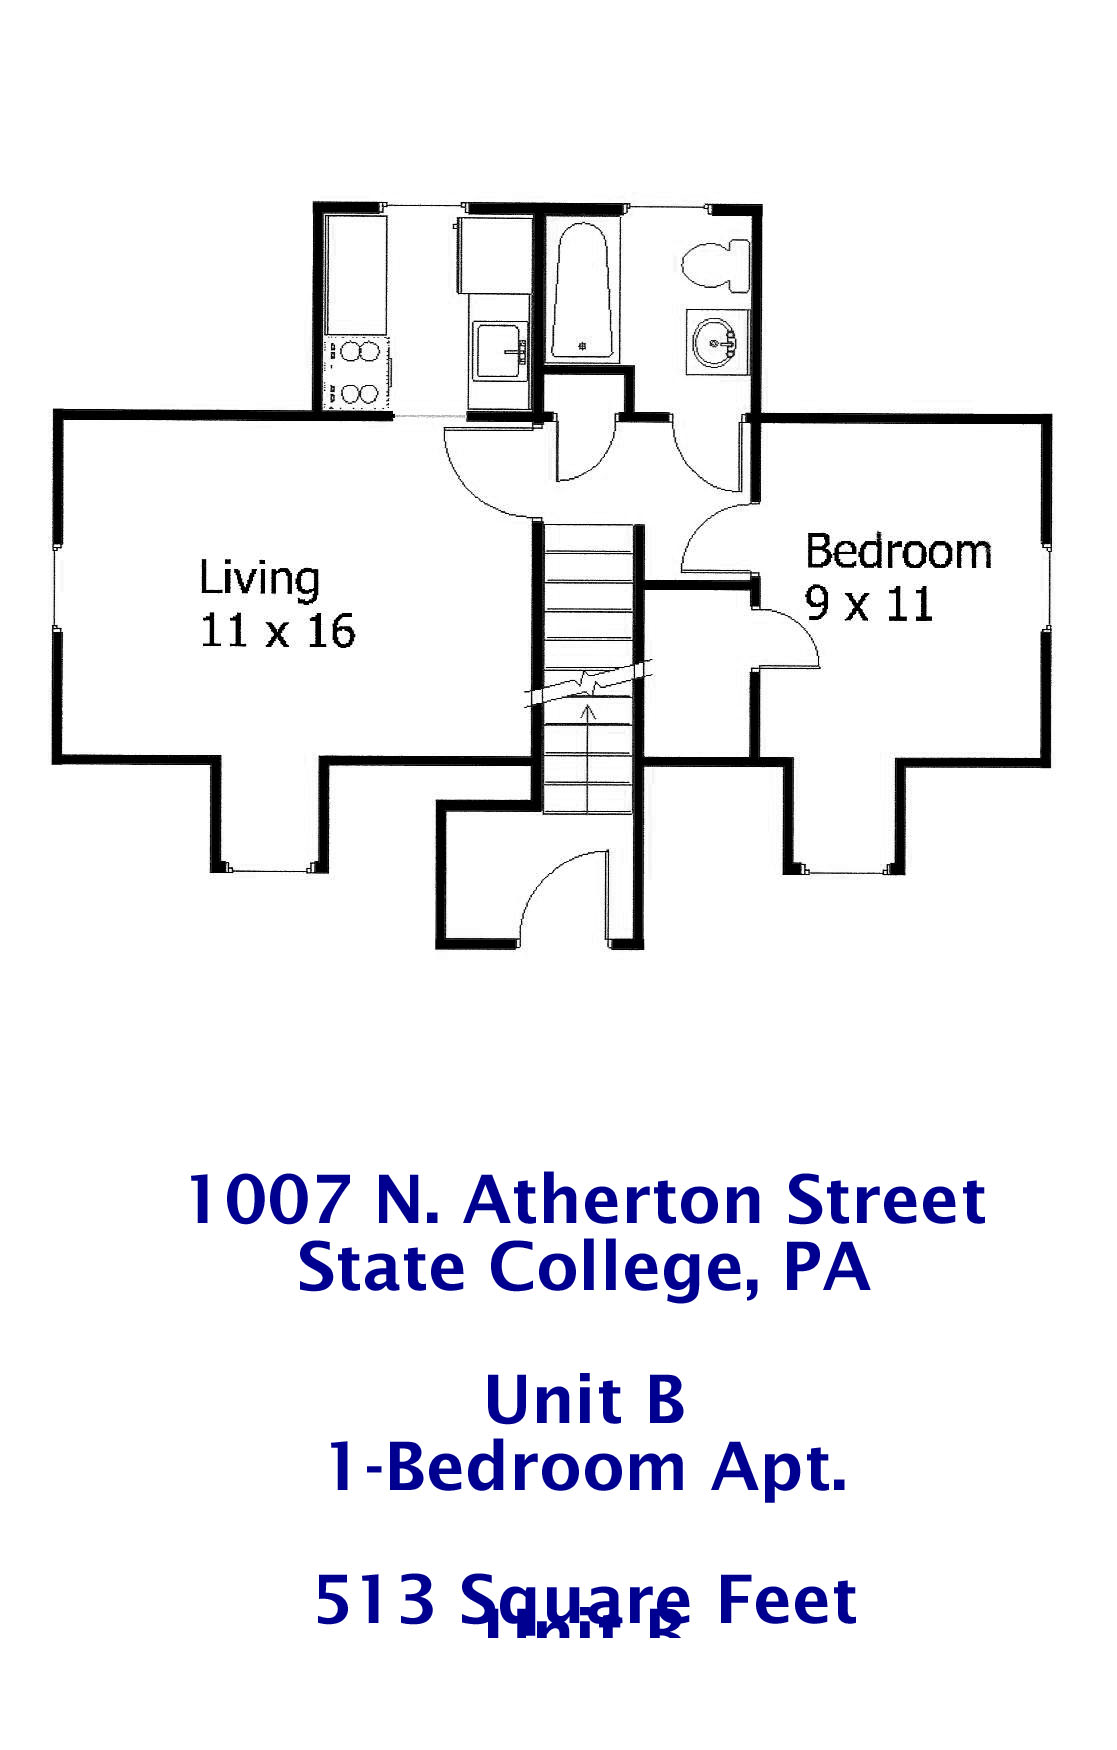 Floor plan of the 1-bedroom apartment for rent at 1007-B N. Atherton Street in State College, PA.